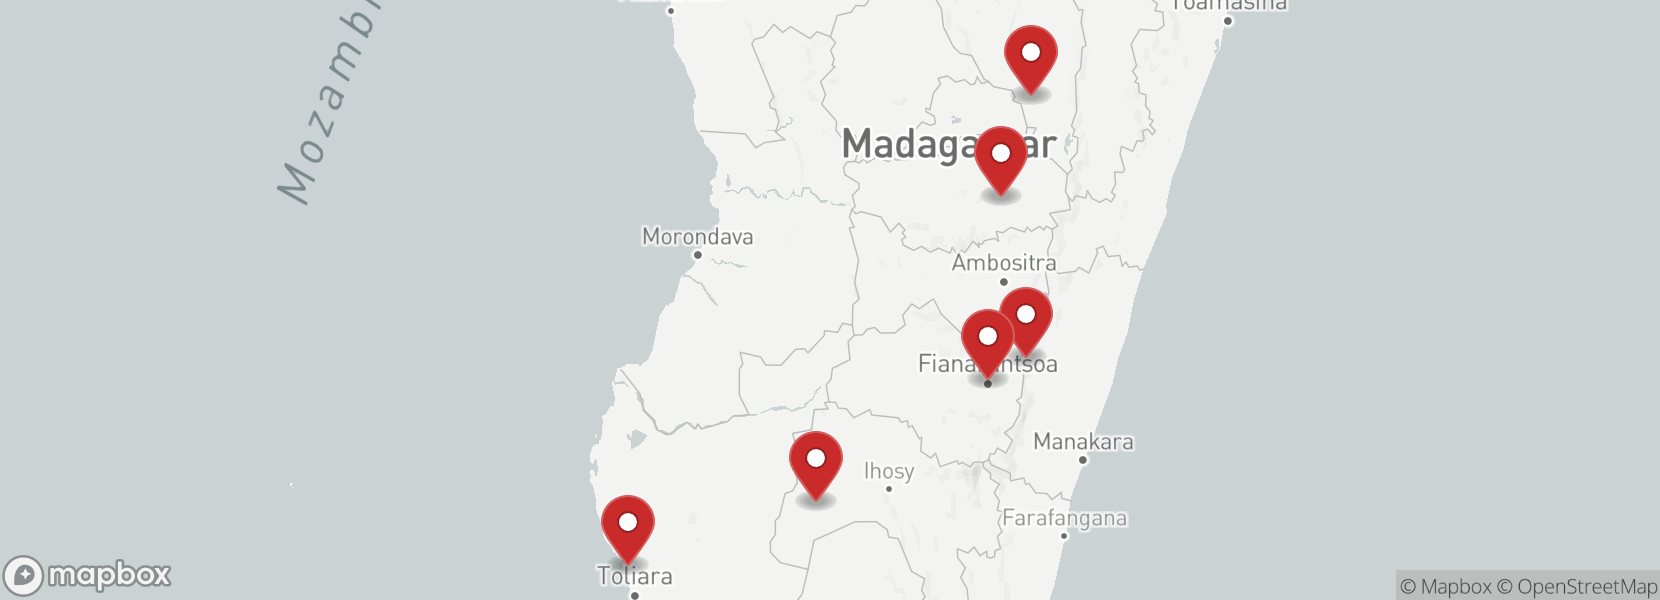 Itinerary Madagascar motorcycle tour on Royal Enfield